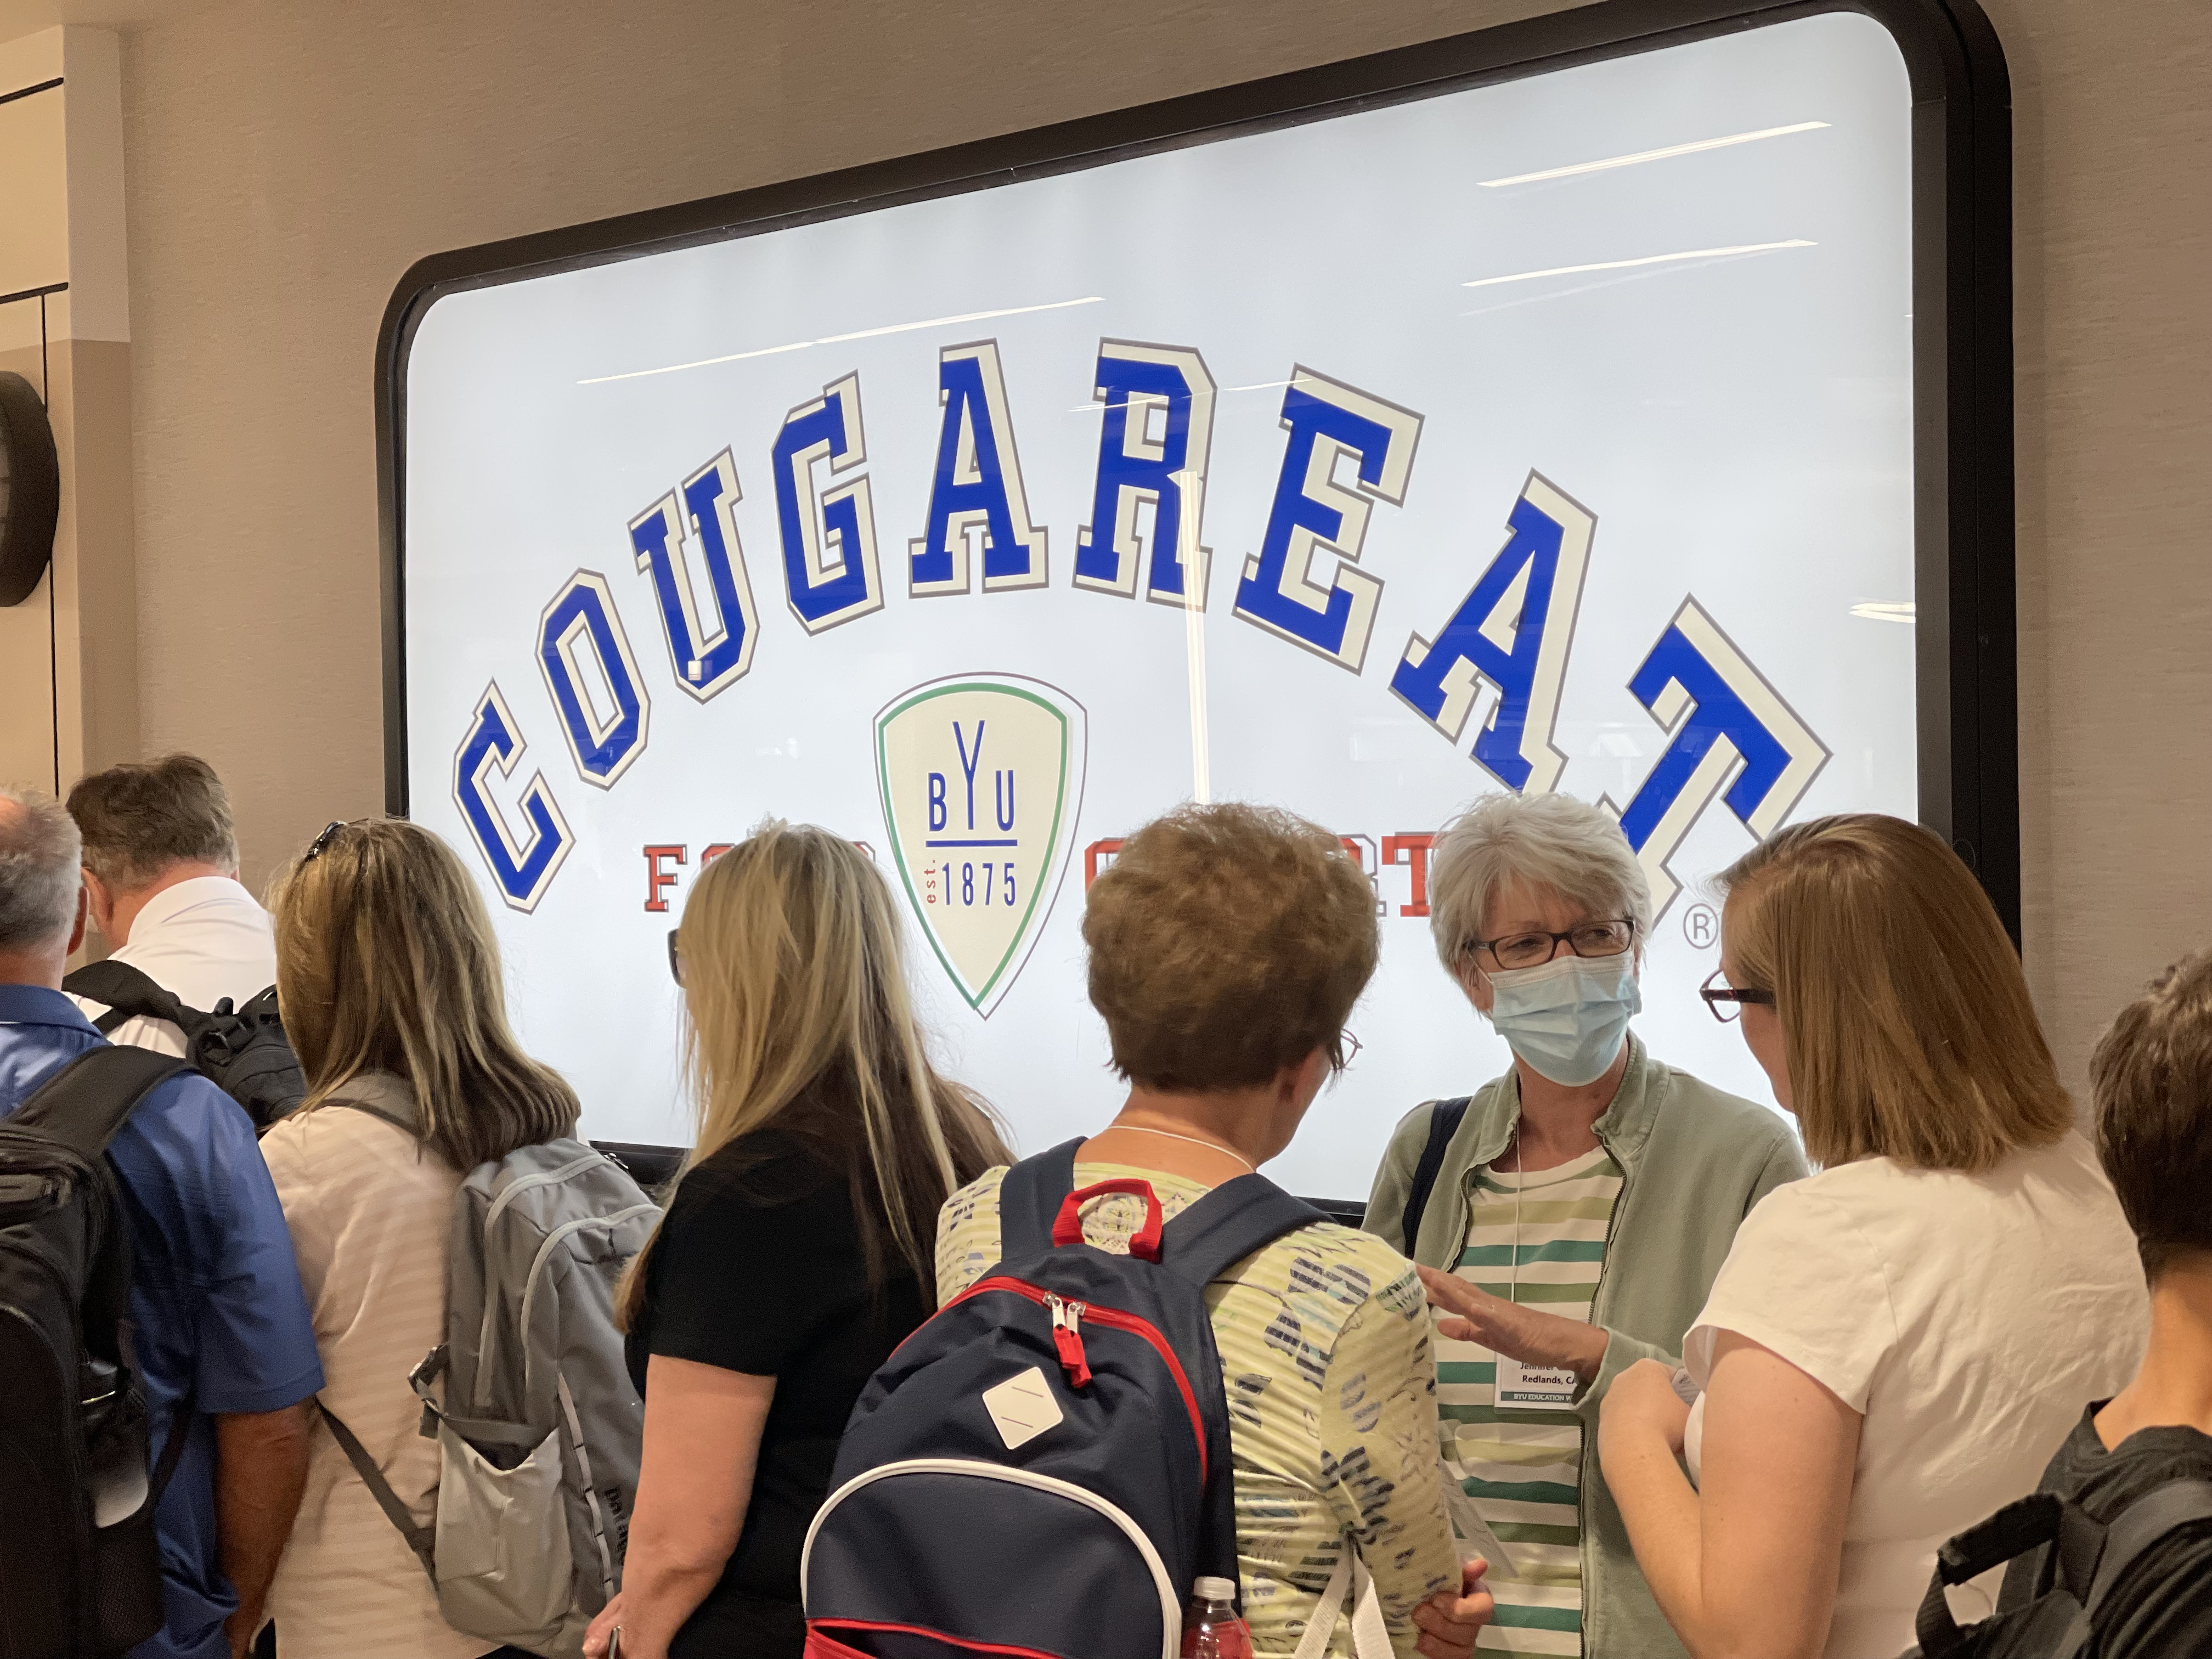 Some people wore masks while attending Education Week at BYU on Monday, Aug. 16, 2021.